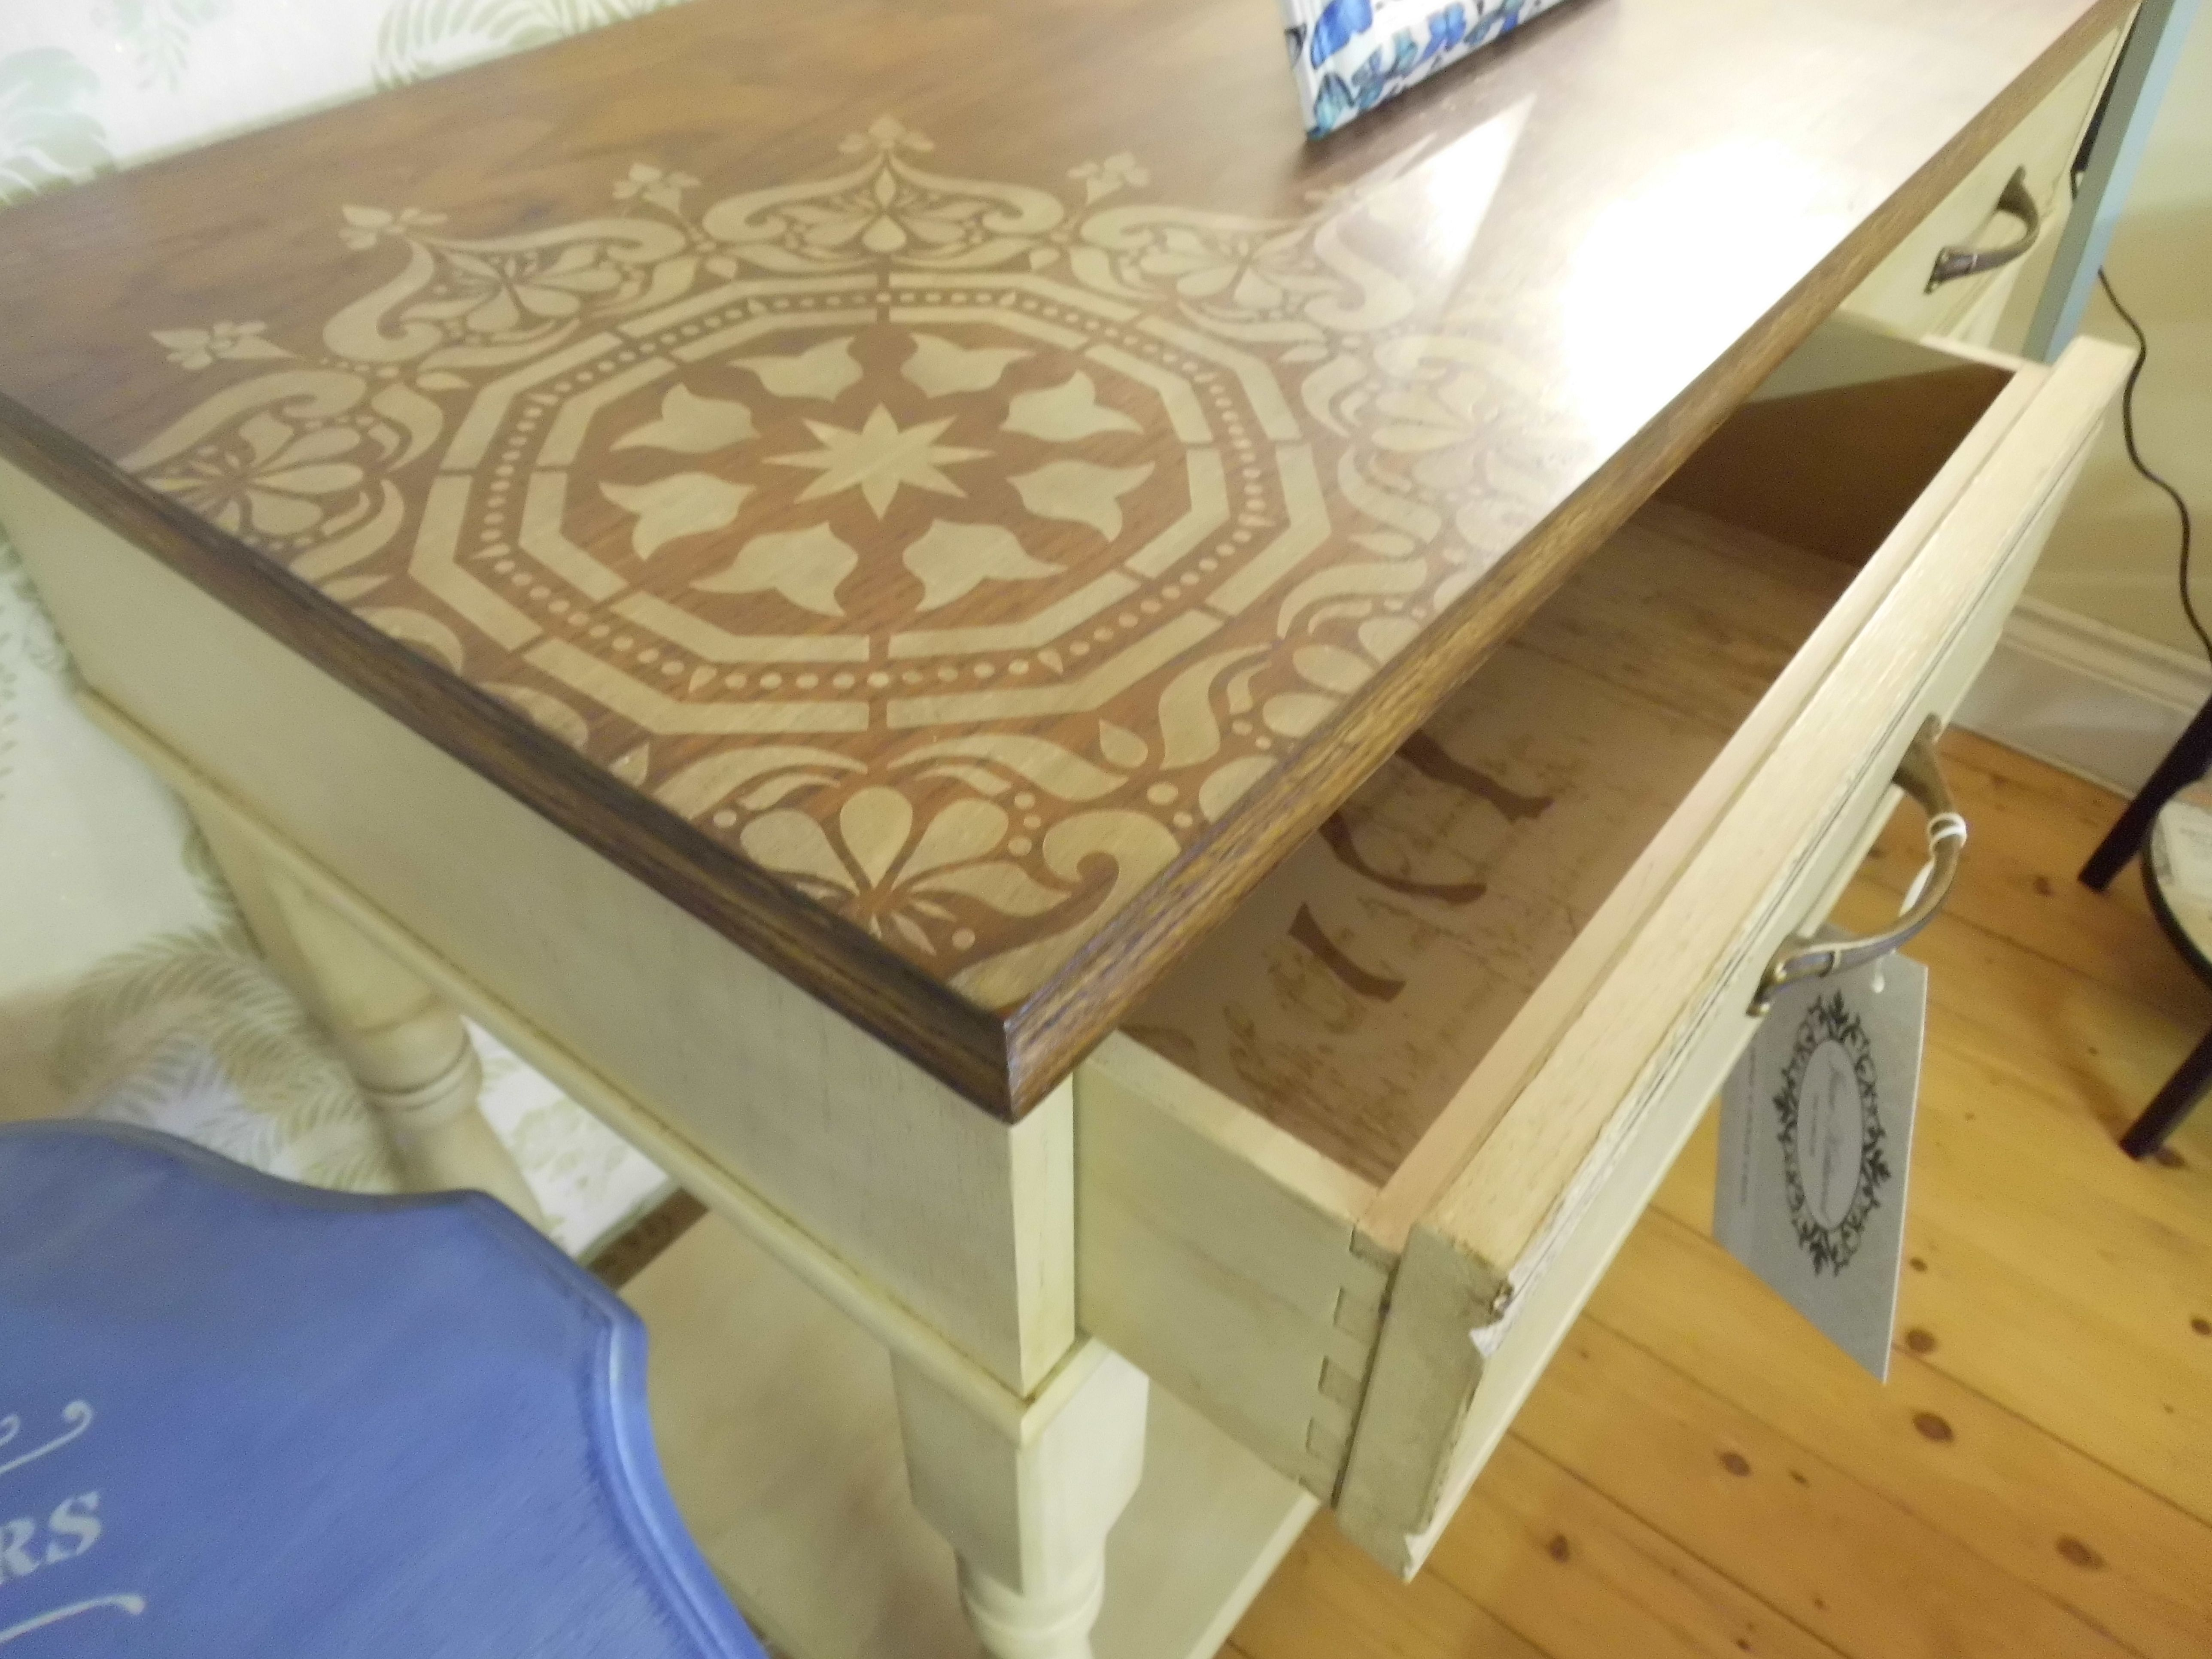 Painted Cream Table Top In Dark Oak Wood Stain With Medallion Circular Stencil Design Drawers Painted Cream And Staining Wood Oak Wood Stain Cream Furniture